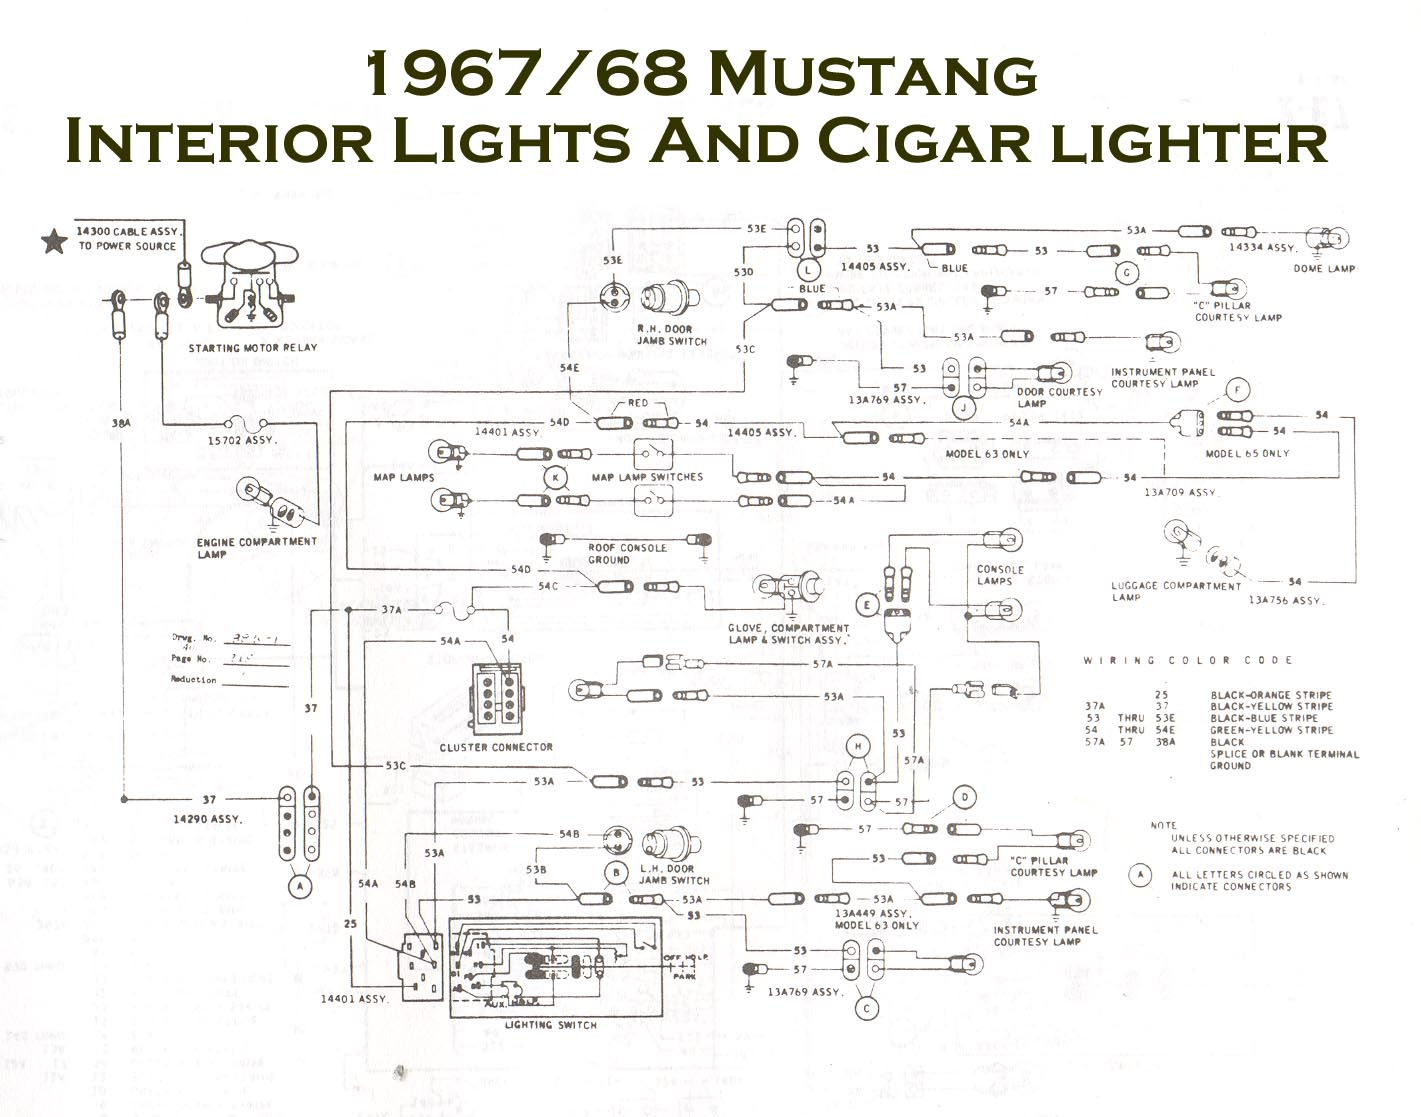 1967 68_console_wiring_diagram vintage mustang wiring diagrams 1967 mustang instrument cluster wiring diagram at sewacar.co